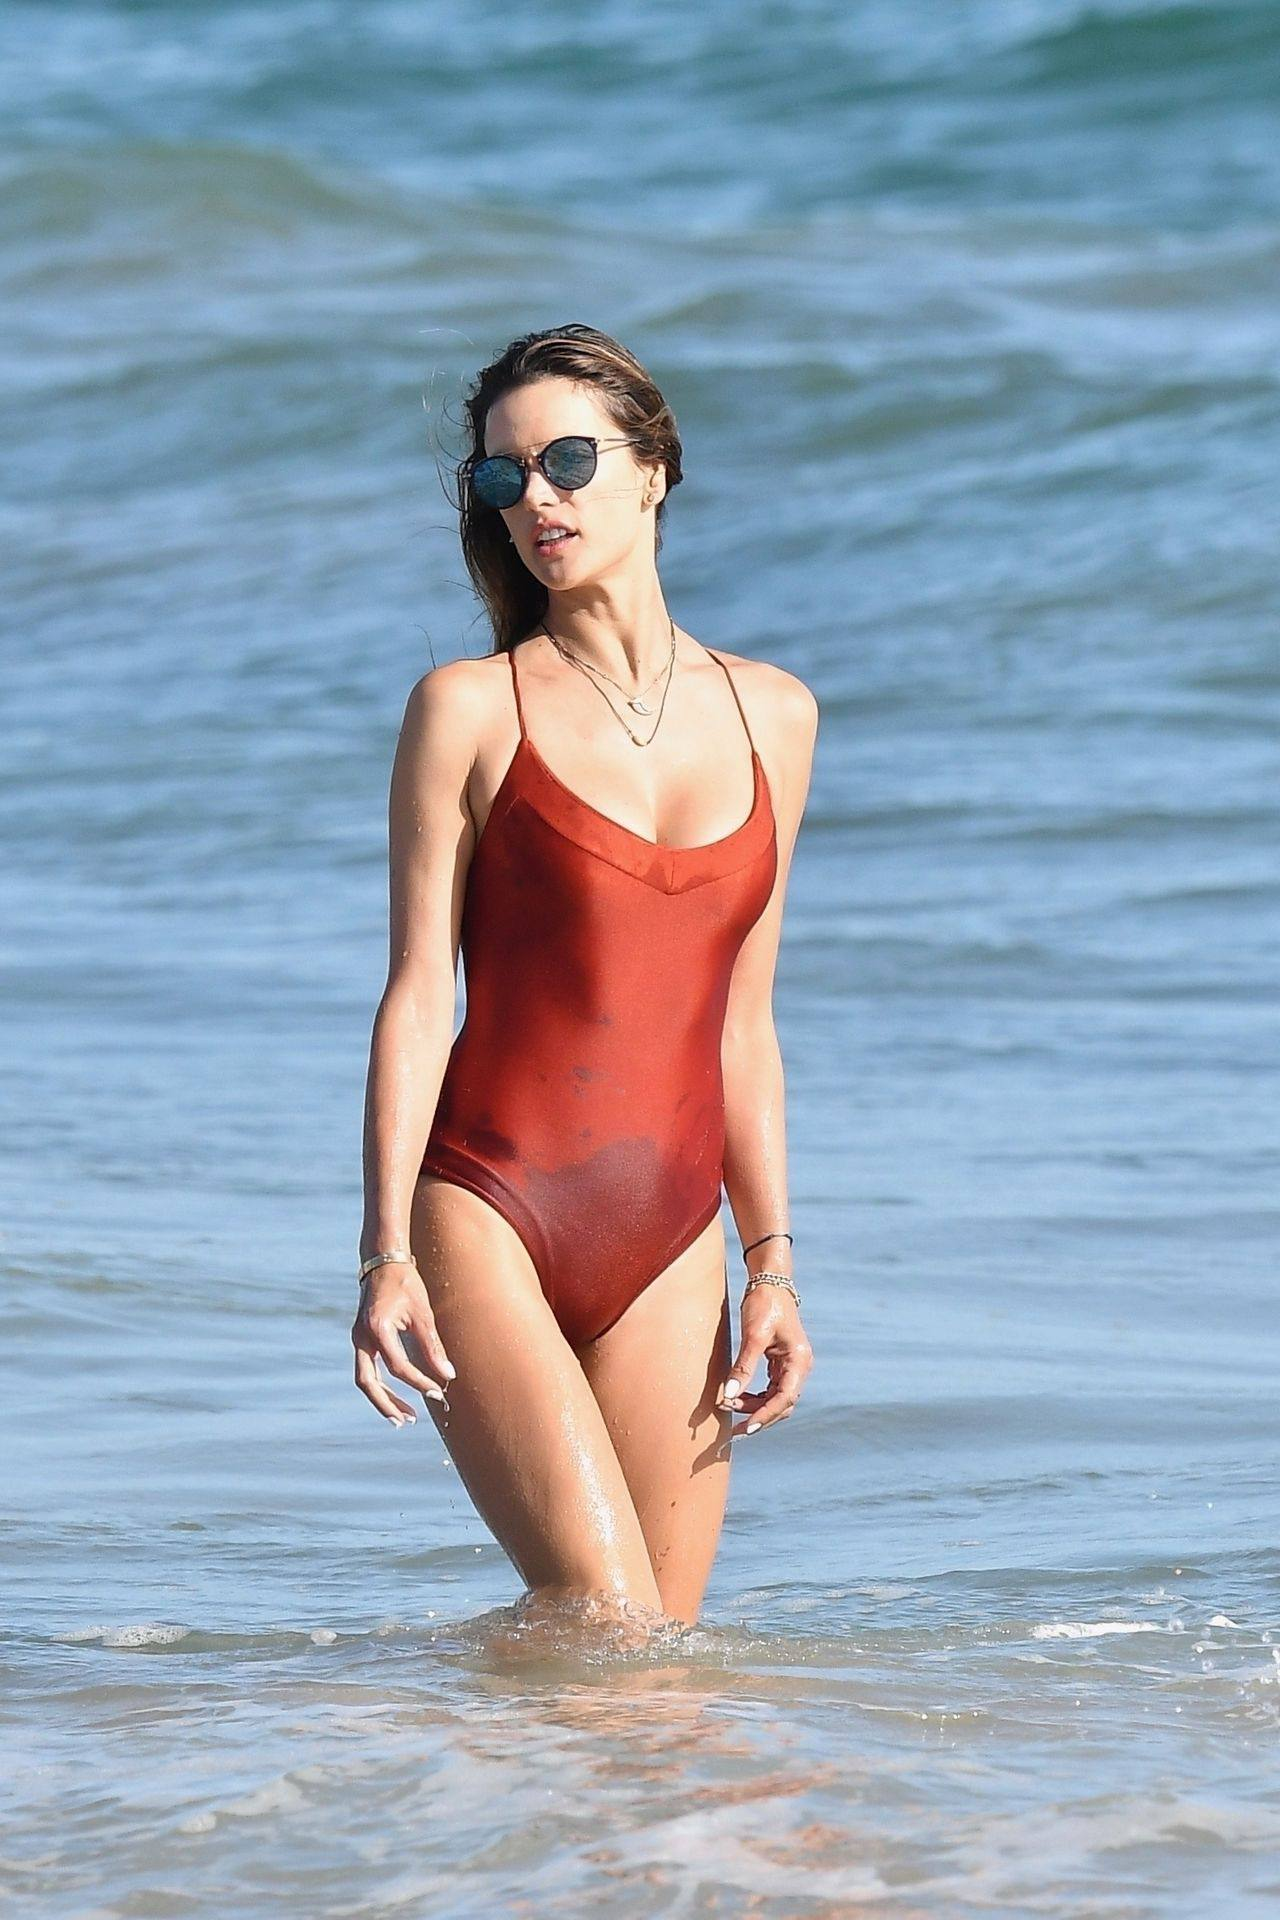 Alessandra Ambrosio – Sexy Ass In Red Swimsuit At The Beach In Malibu 0011